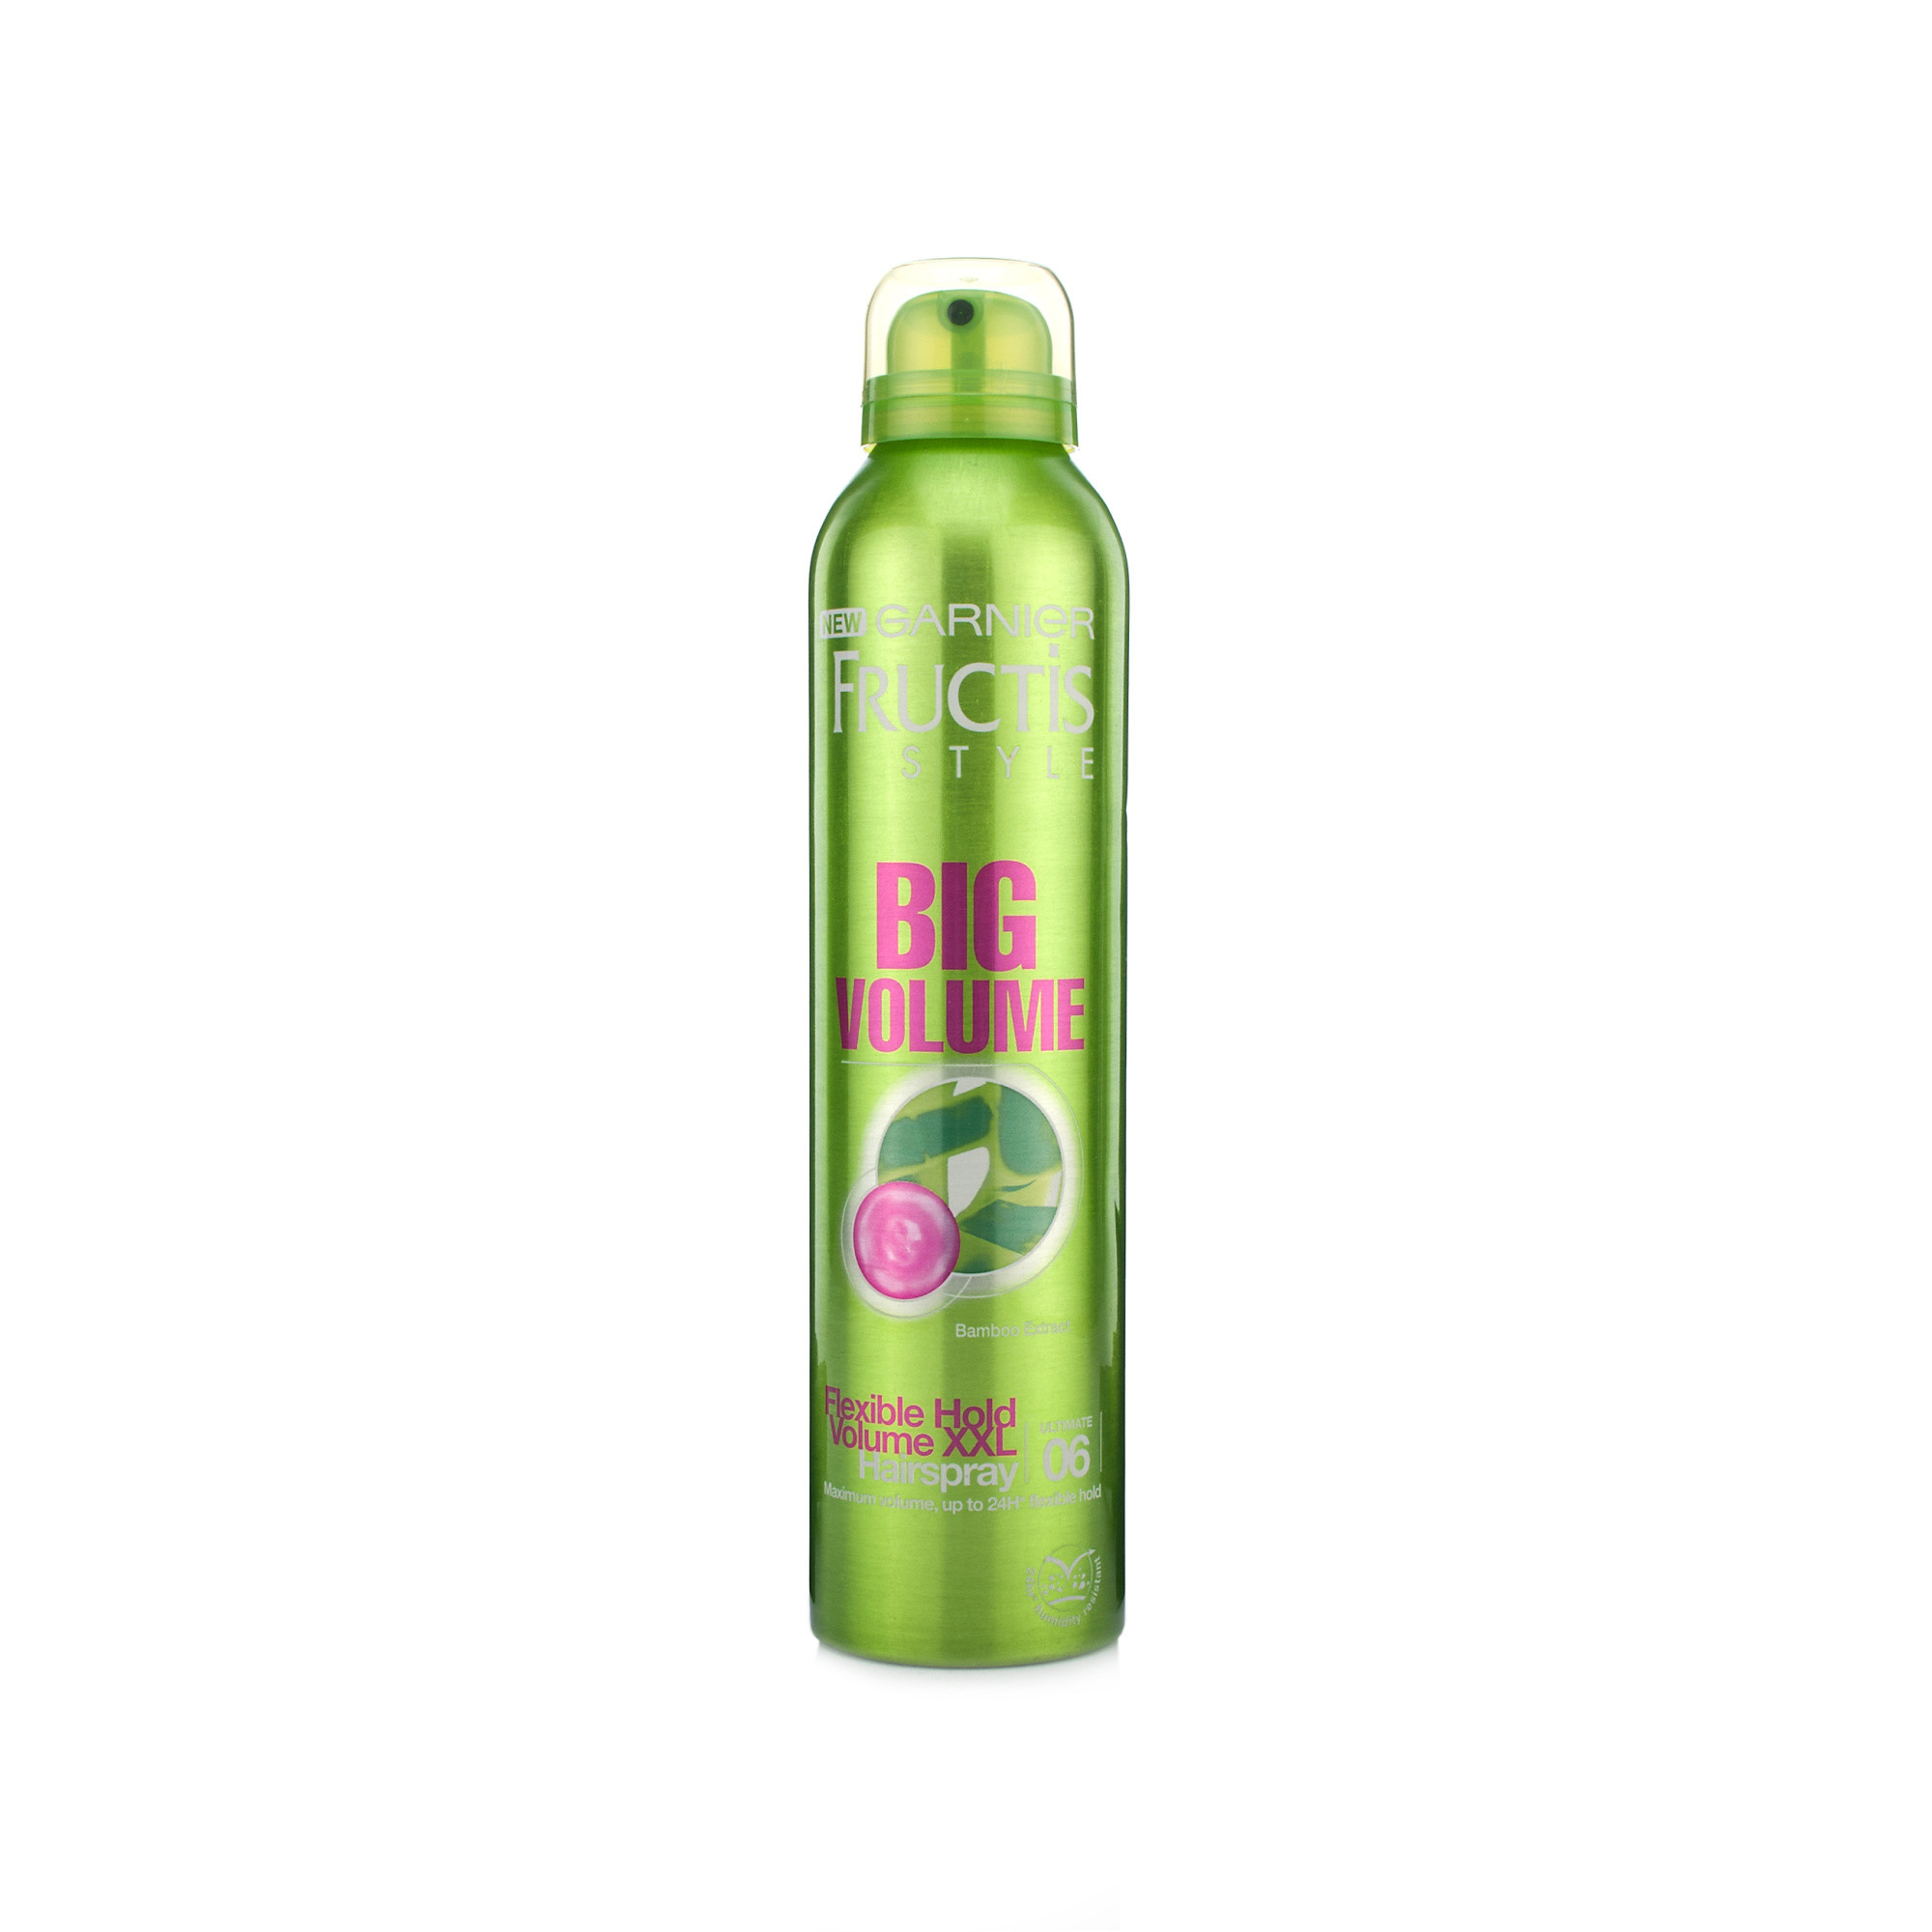 Garnier Fructis Crystal Resist Volume Hair Spray